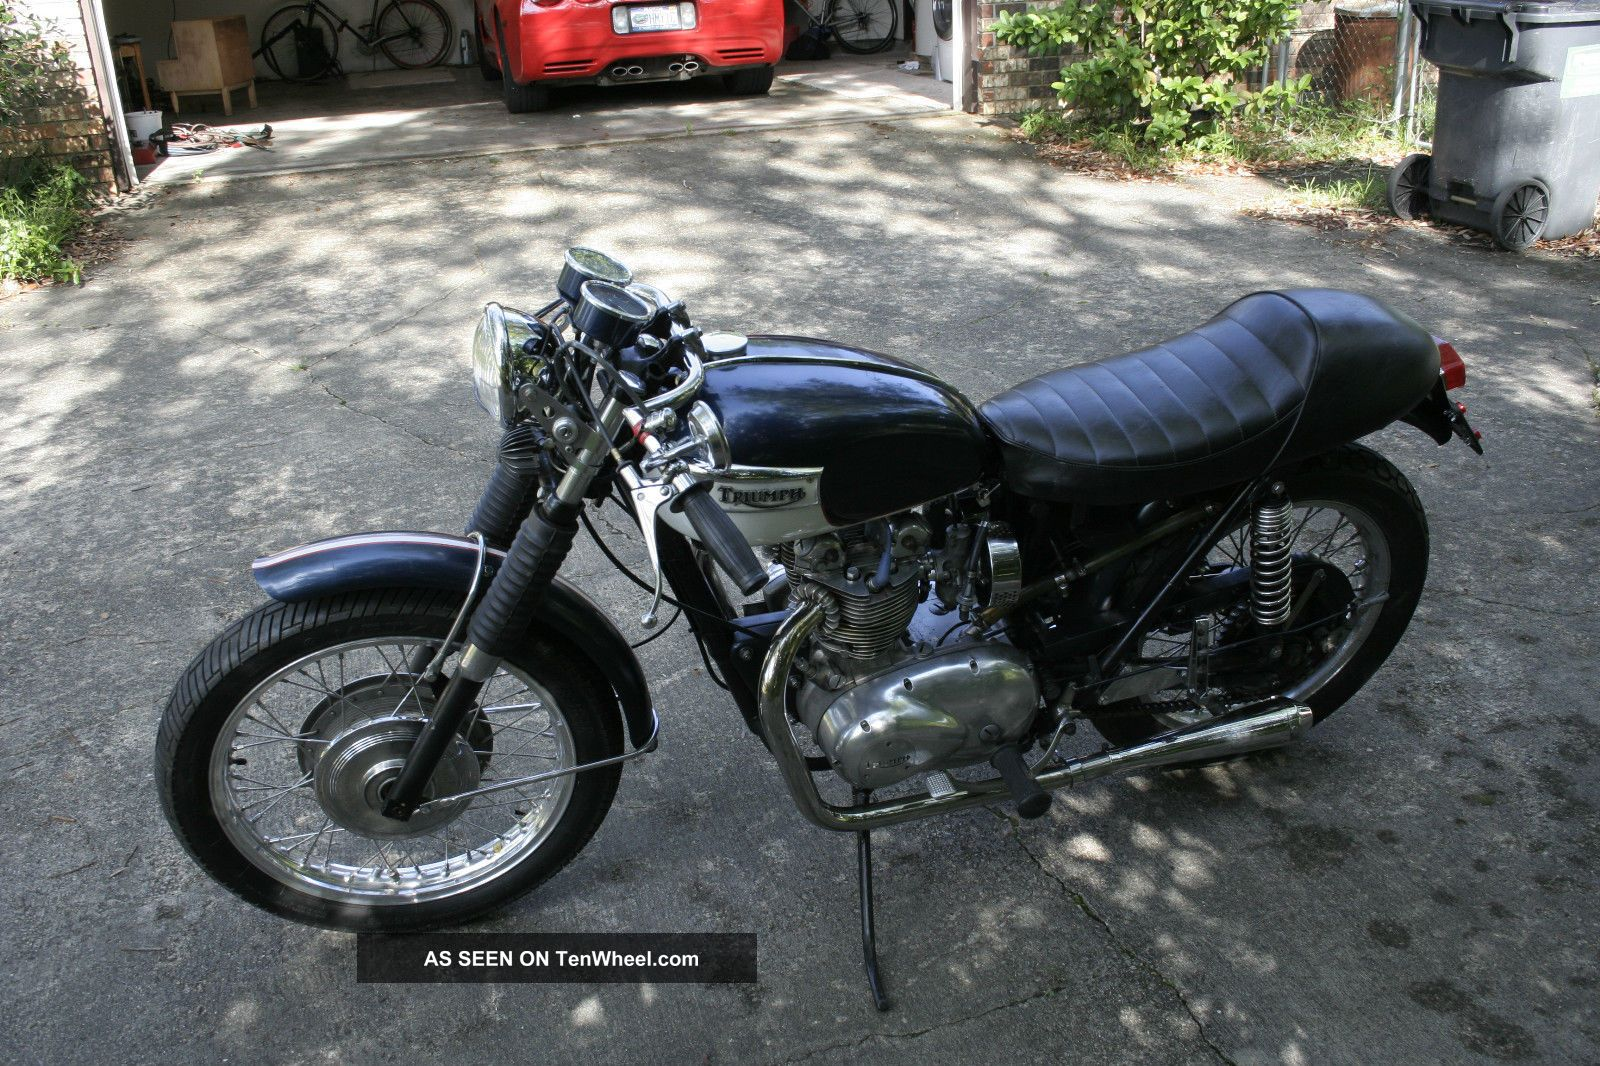 1972 triumph motorcycle modelson - photo #17